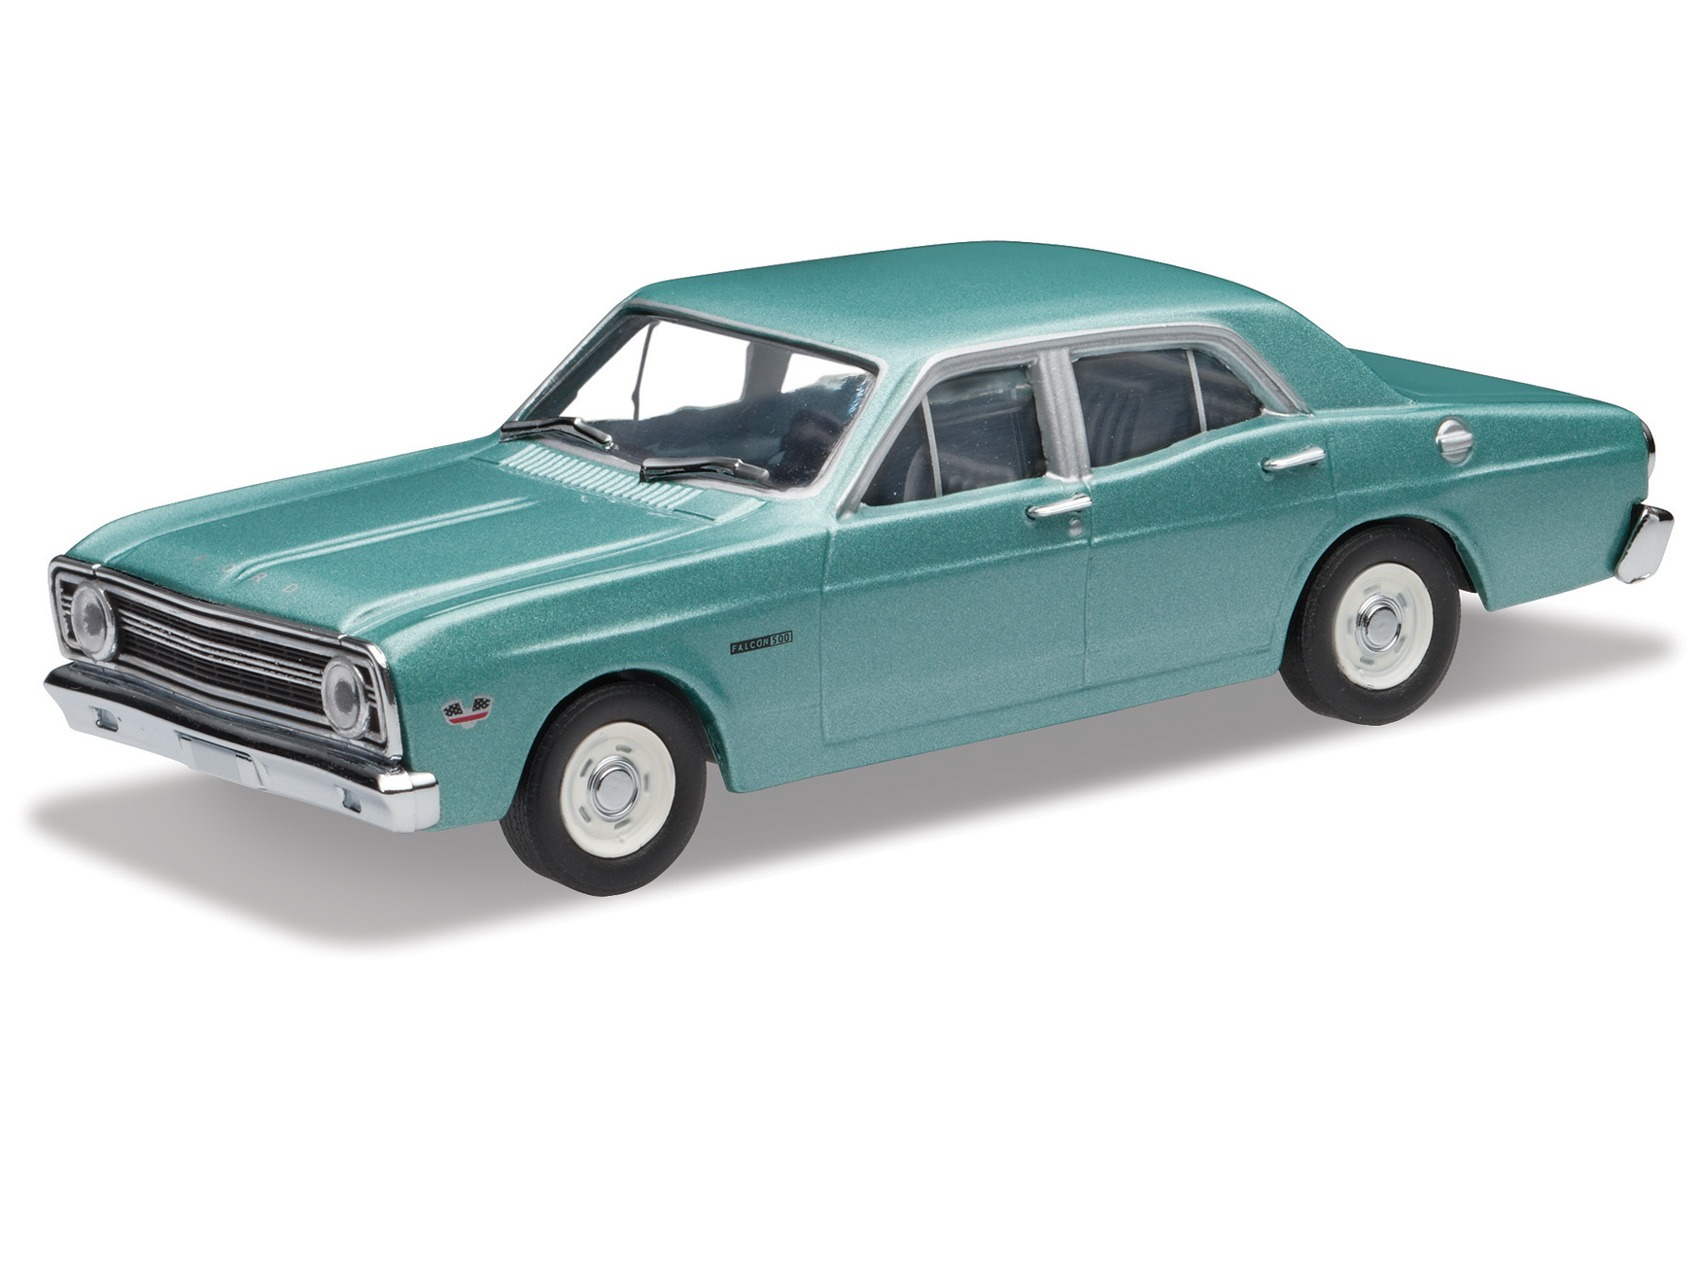 1966 Ford XR Falcon – Velvet Green Metallic